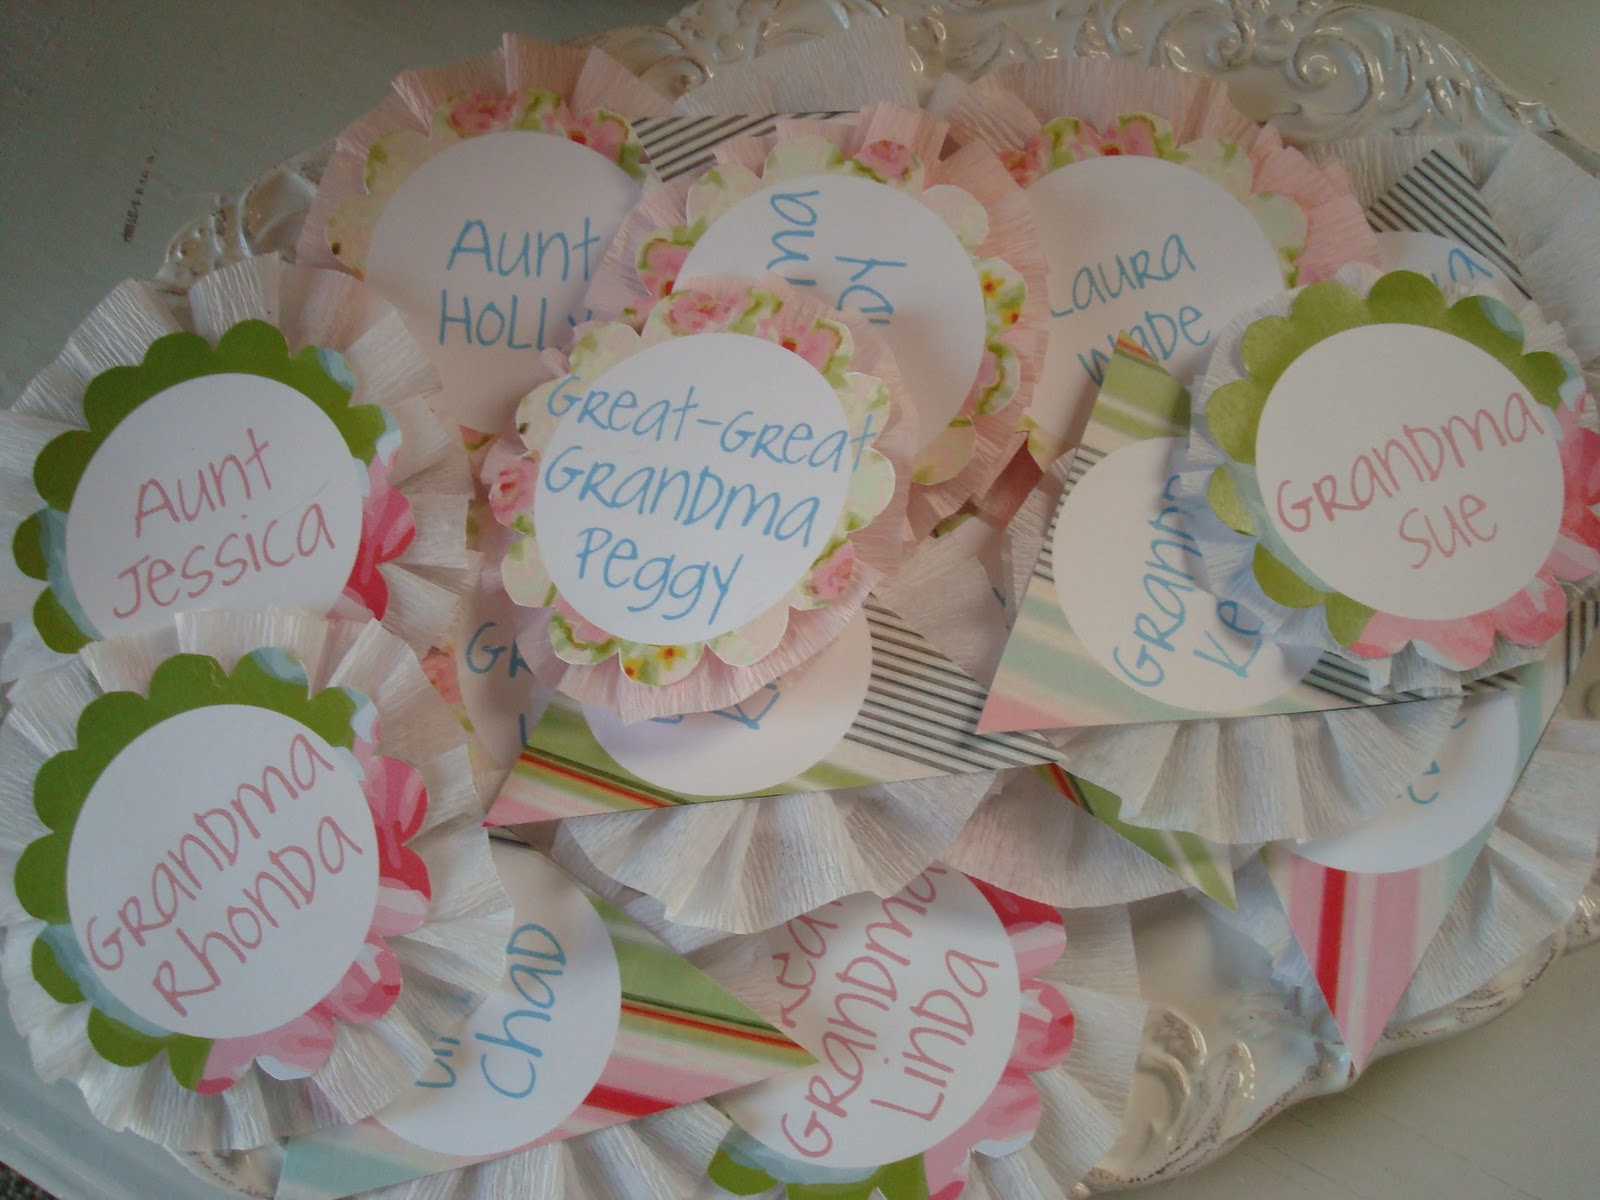 how to make name tags for baby shower guests